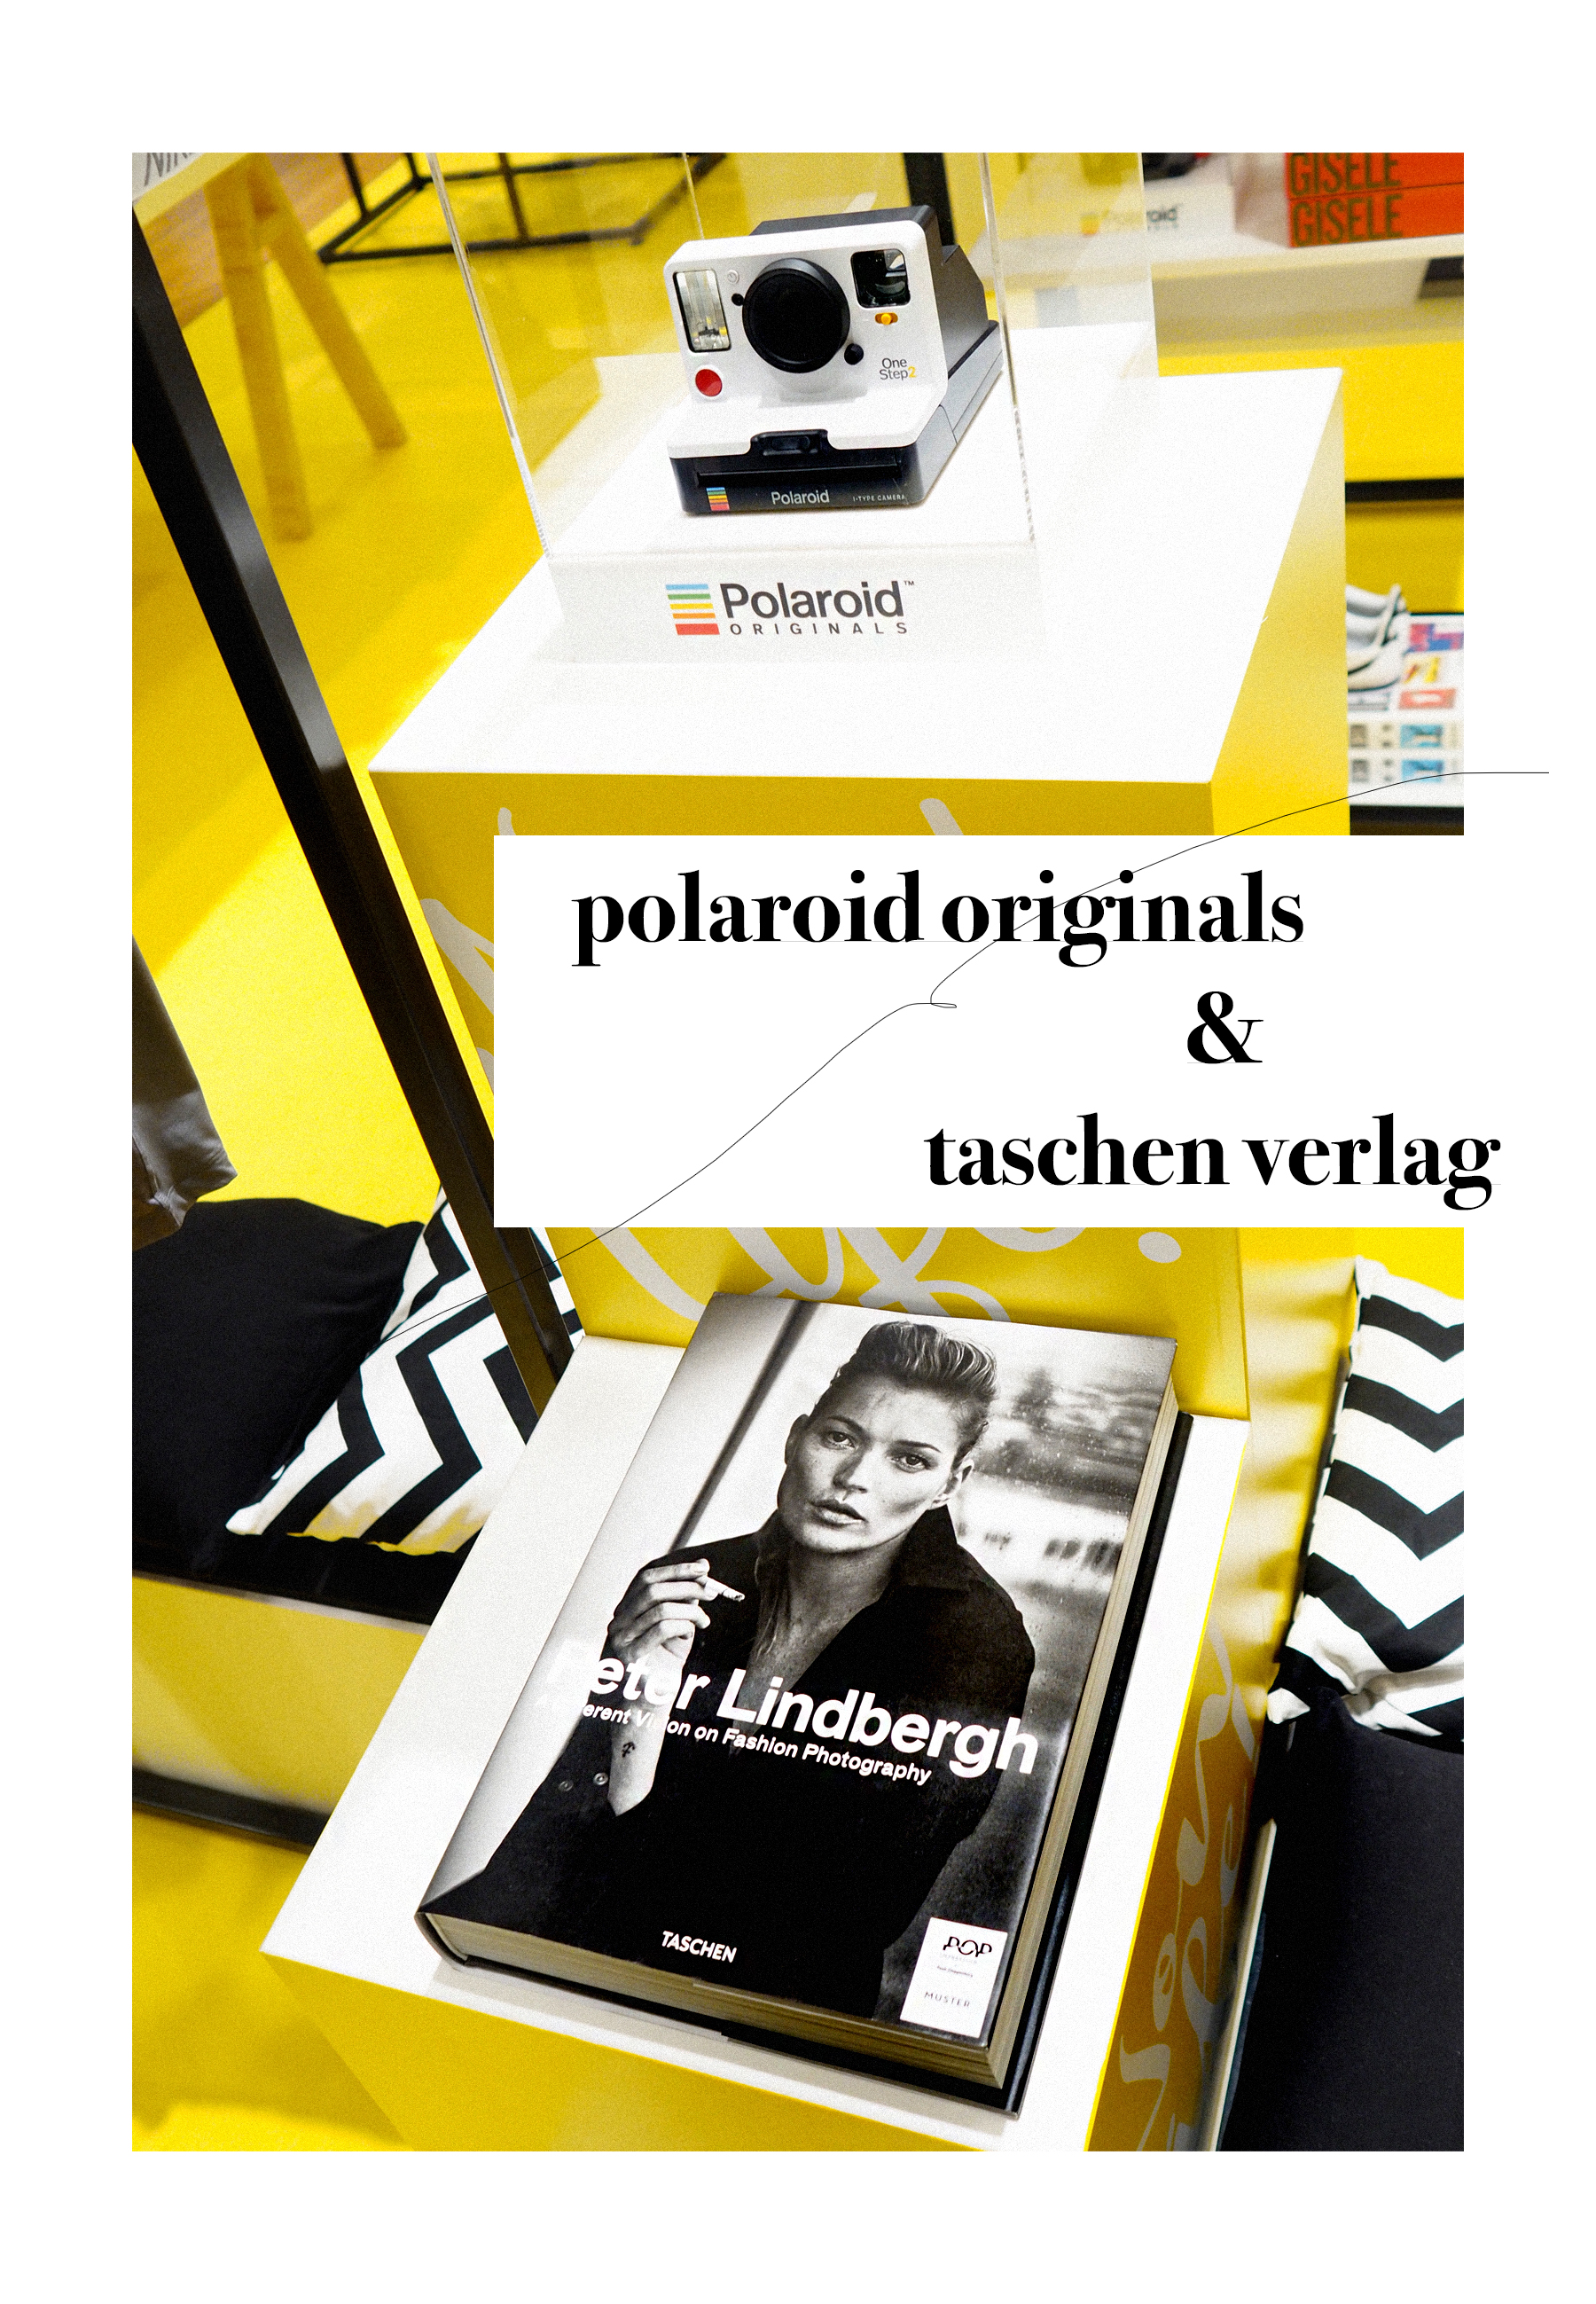 POP IMPRESSION by P&C Düsseldorf launch opening event polaroid originals eberjey marie-stella-maris taschen verlag nike popupstore popup peek&cloppenburg catsanddogsblog ricarda schernus modeblog fashionblogger dus nrw 5